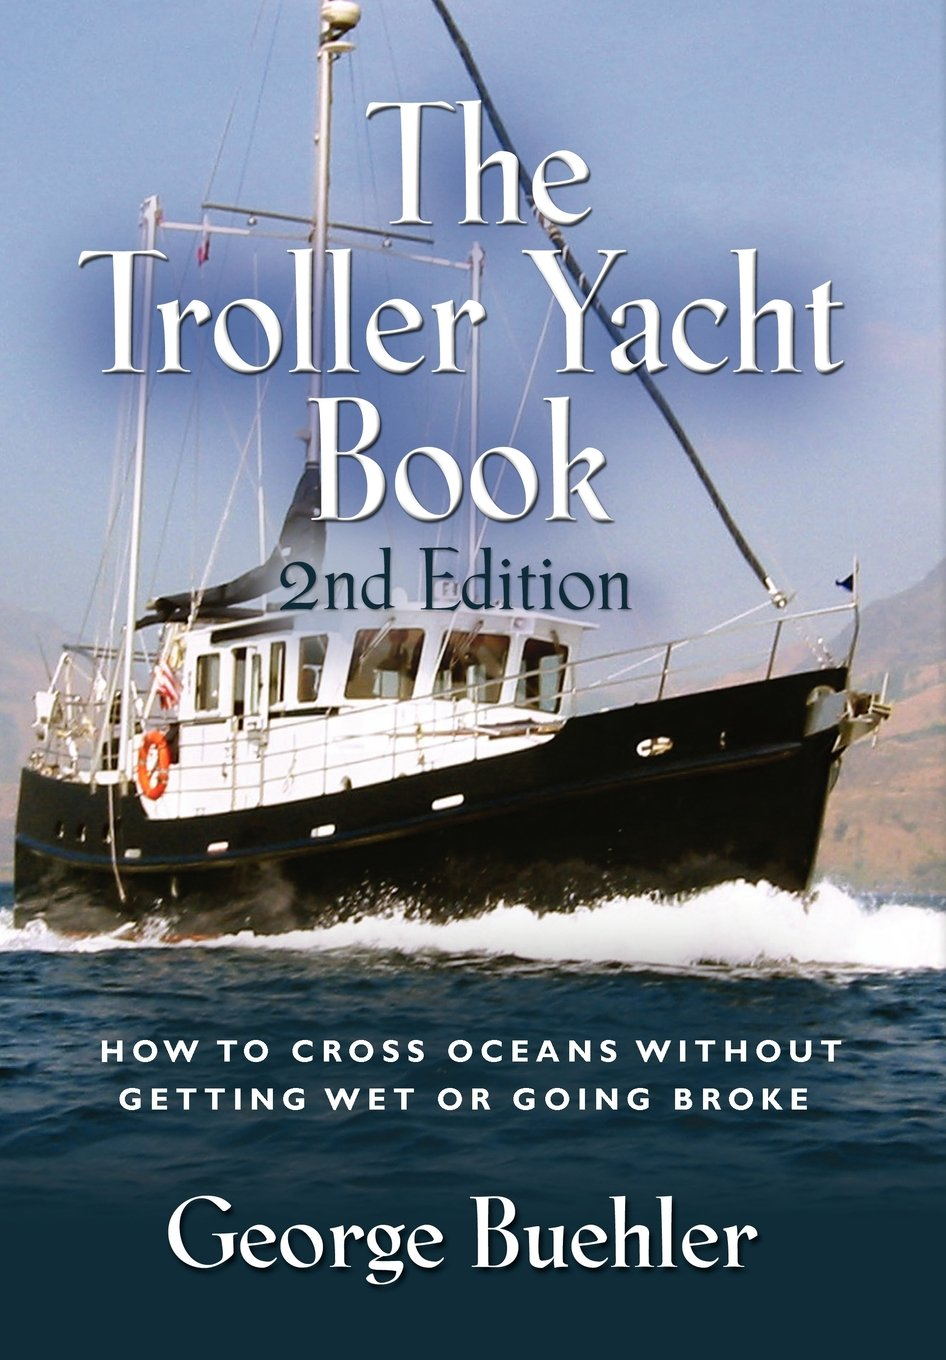 the troller yacht book how to cross oceans without getting wet or